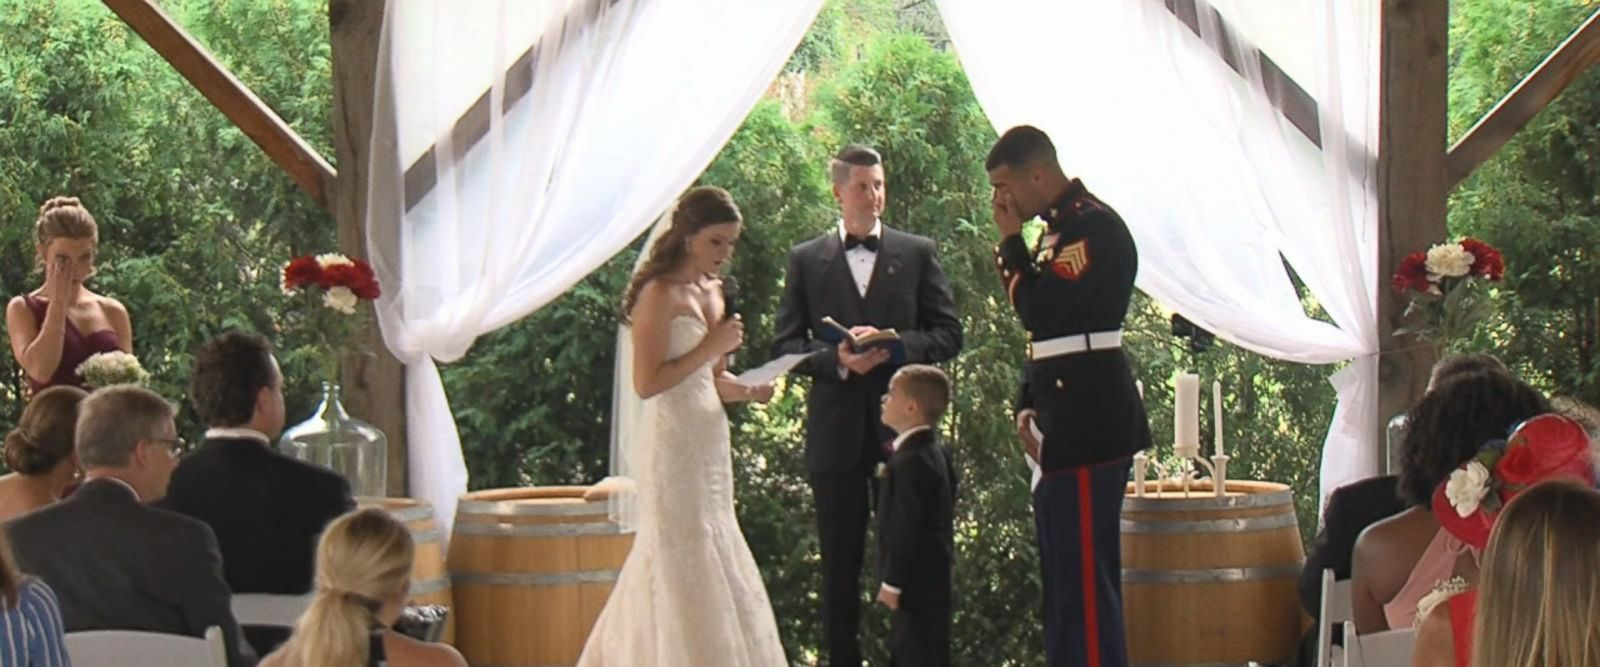 VIDEO: Video of military wedding goes viral